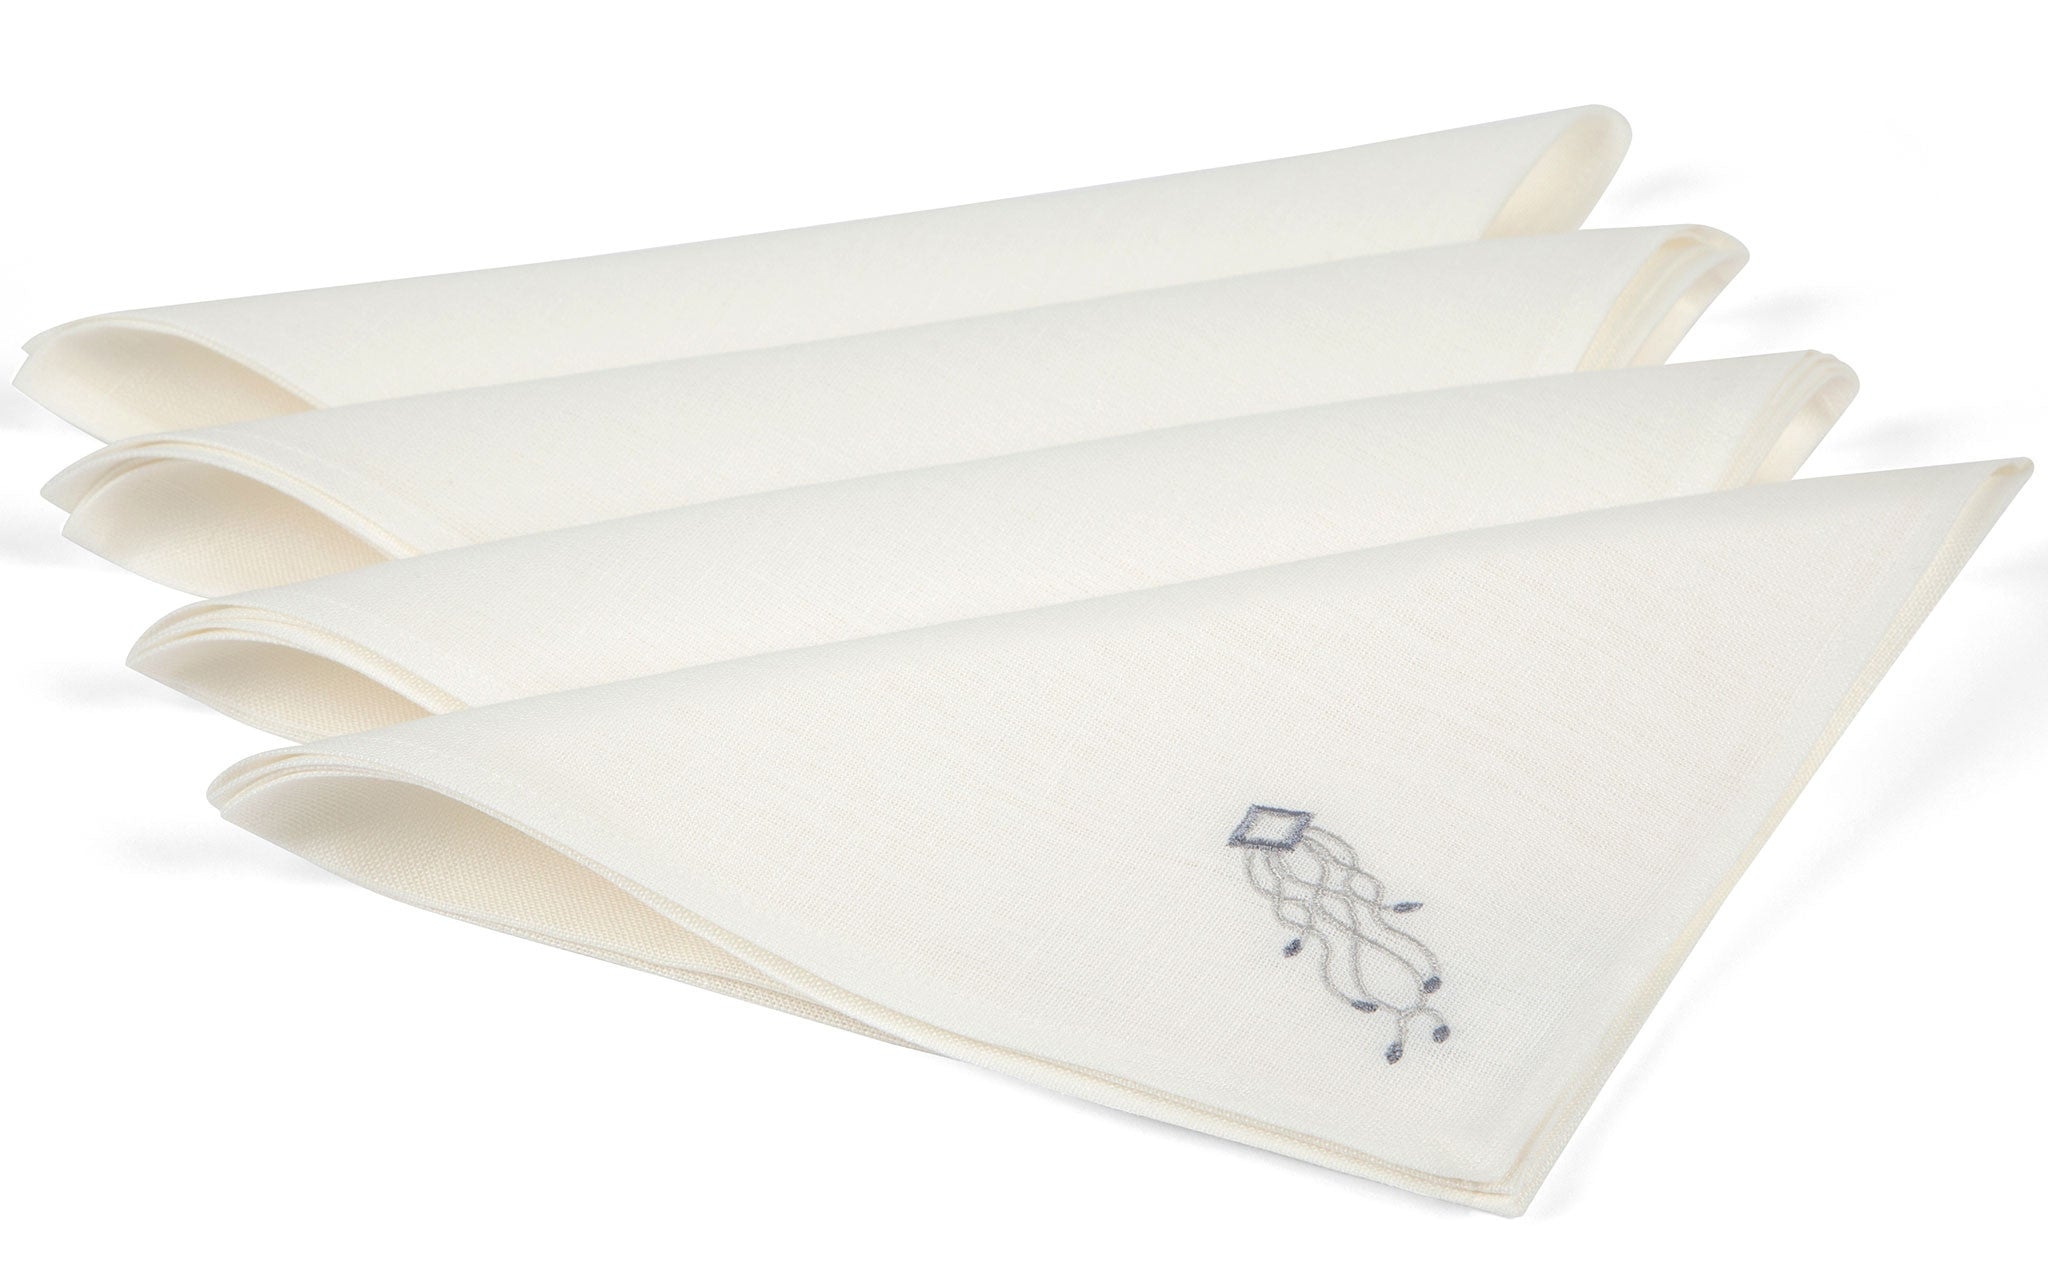 Olog Napkins - Stone on Cream